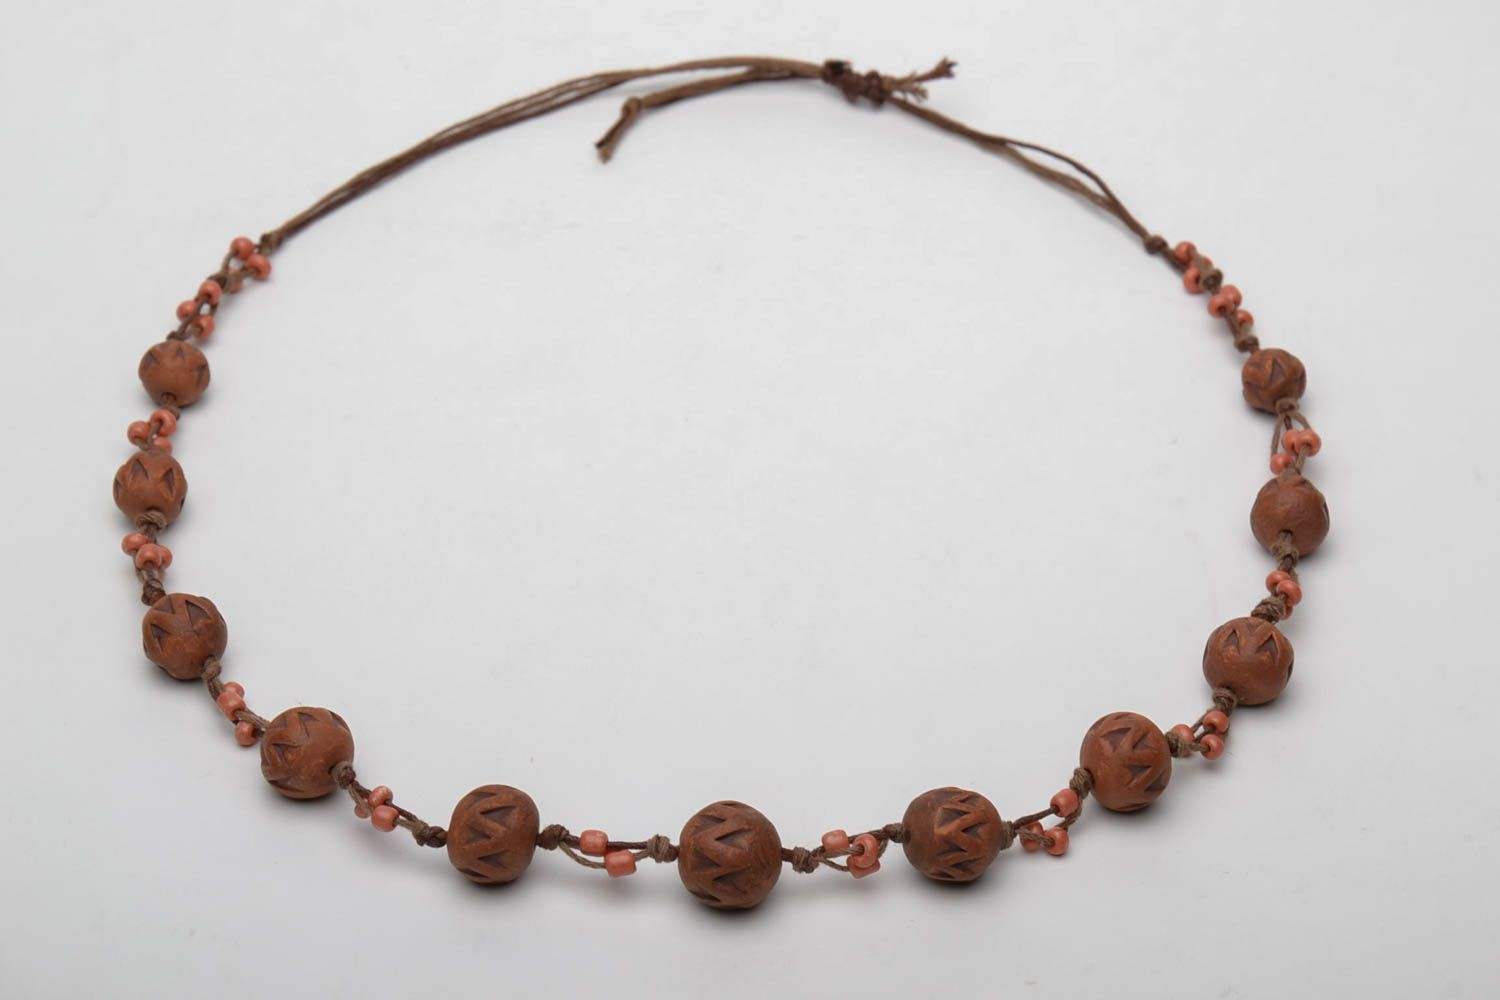 Brown ceramic bead necklace photo 3